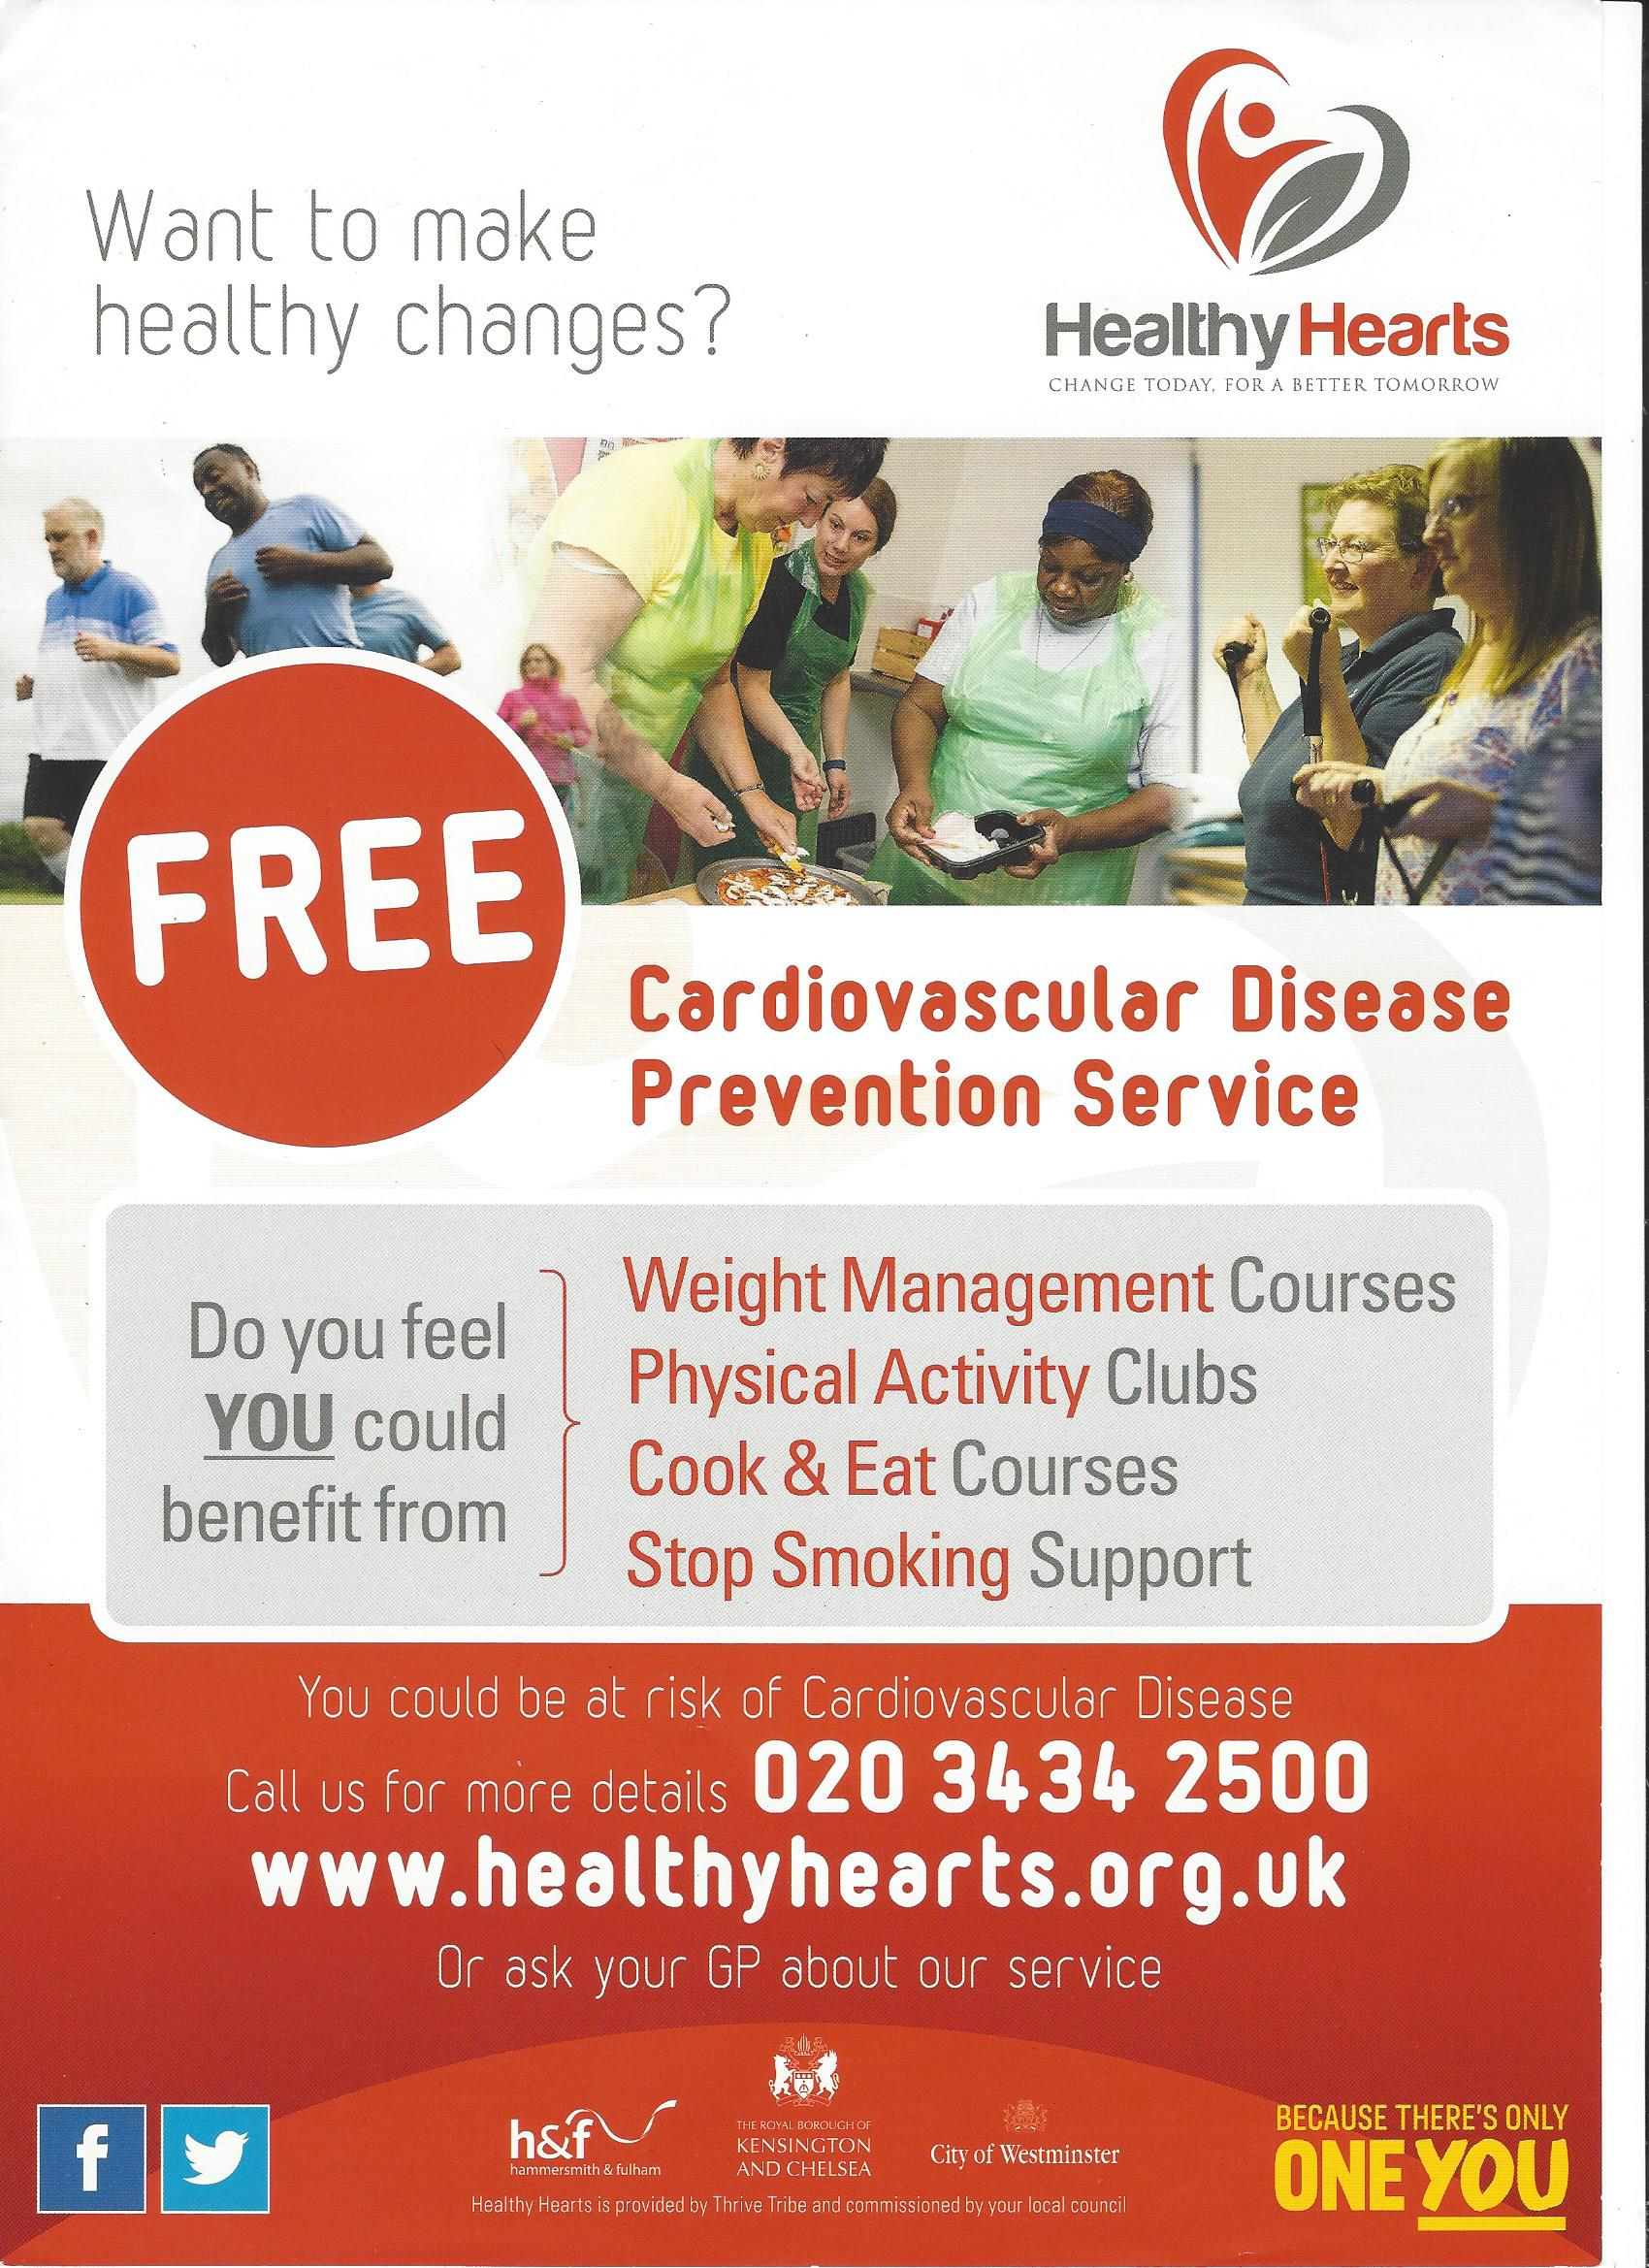 Want to make health changes? visit www.healthyhearts.org.uk